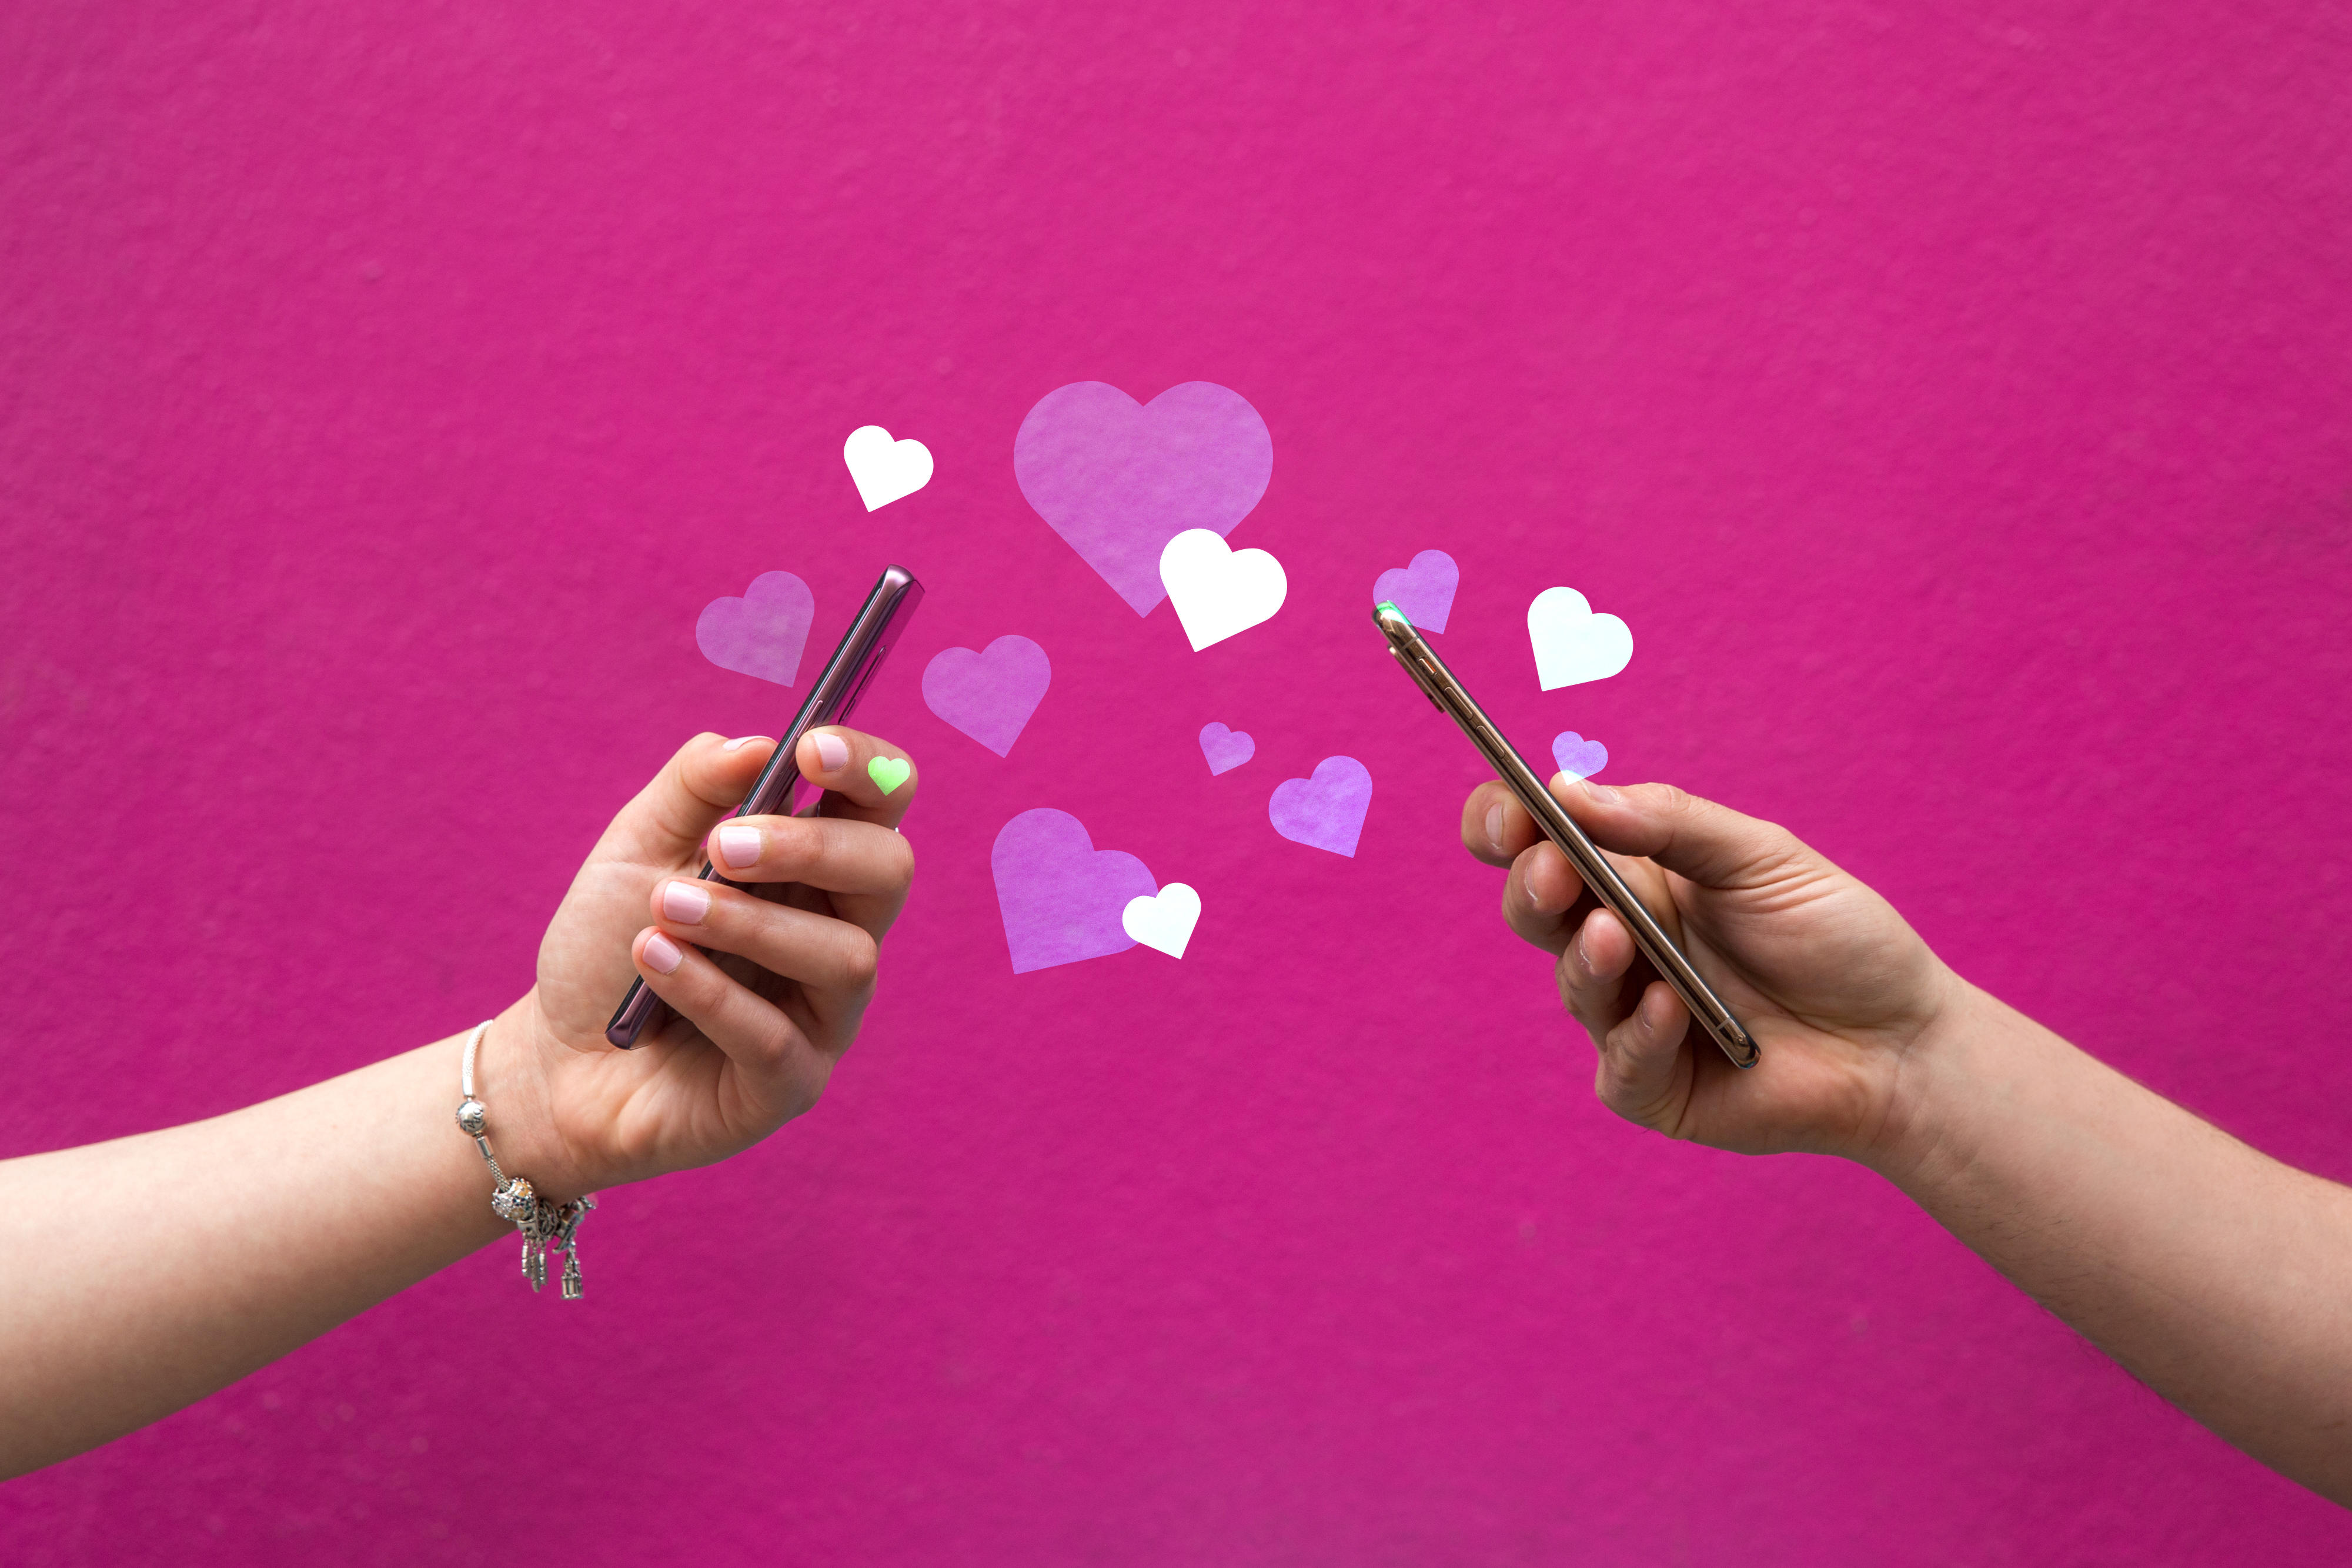 dating-apps-love-hearts-valentines-3